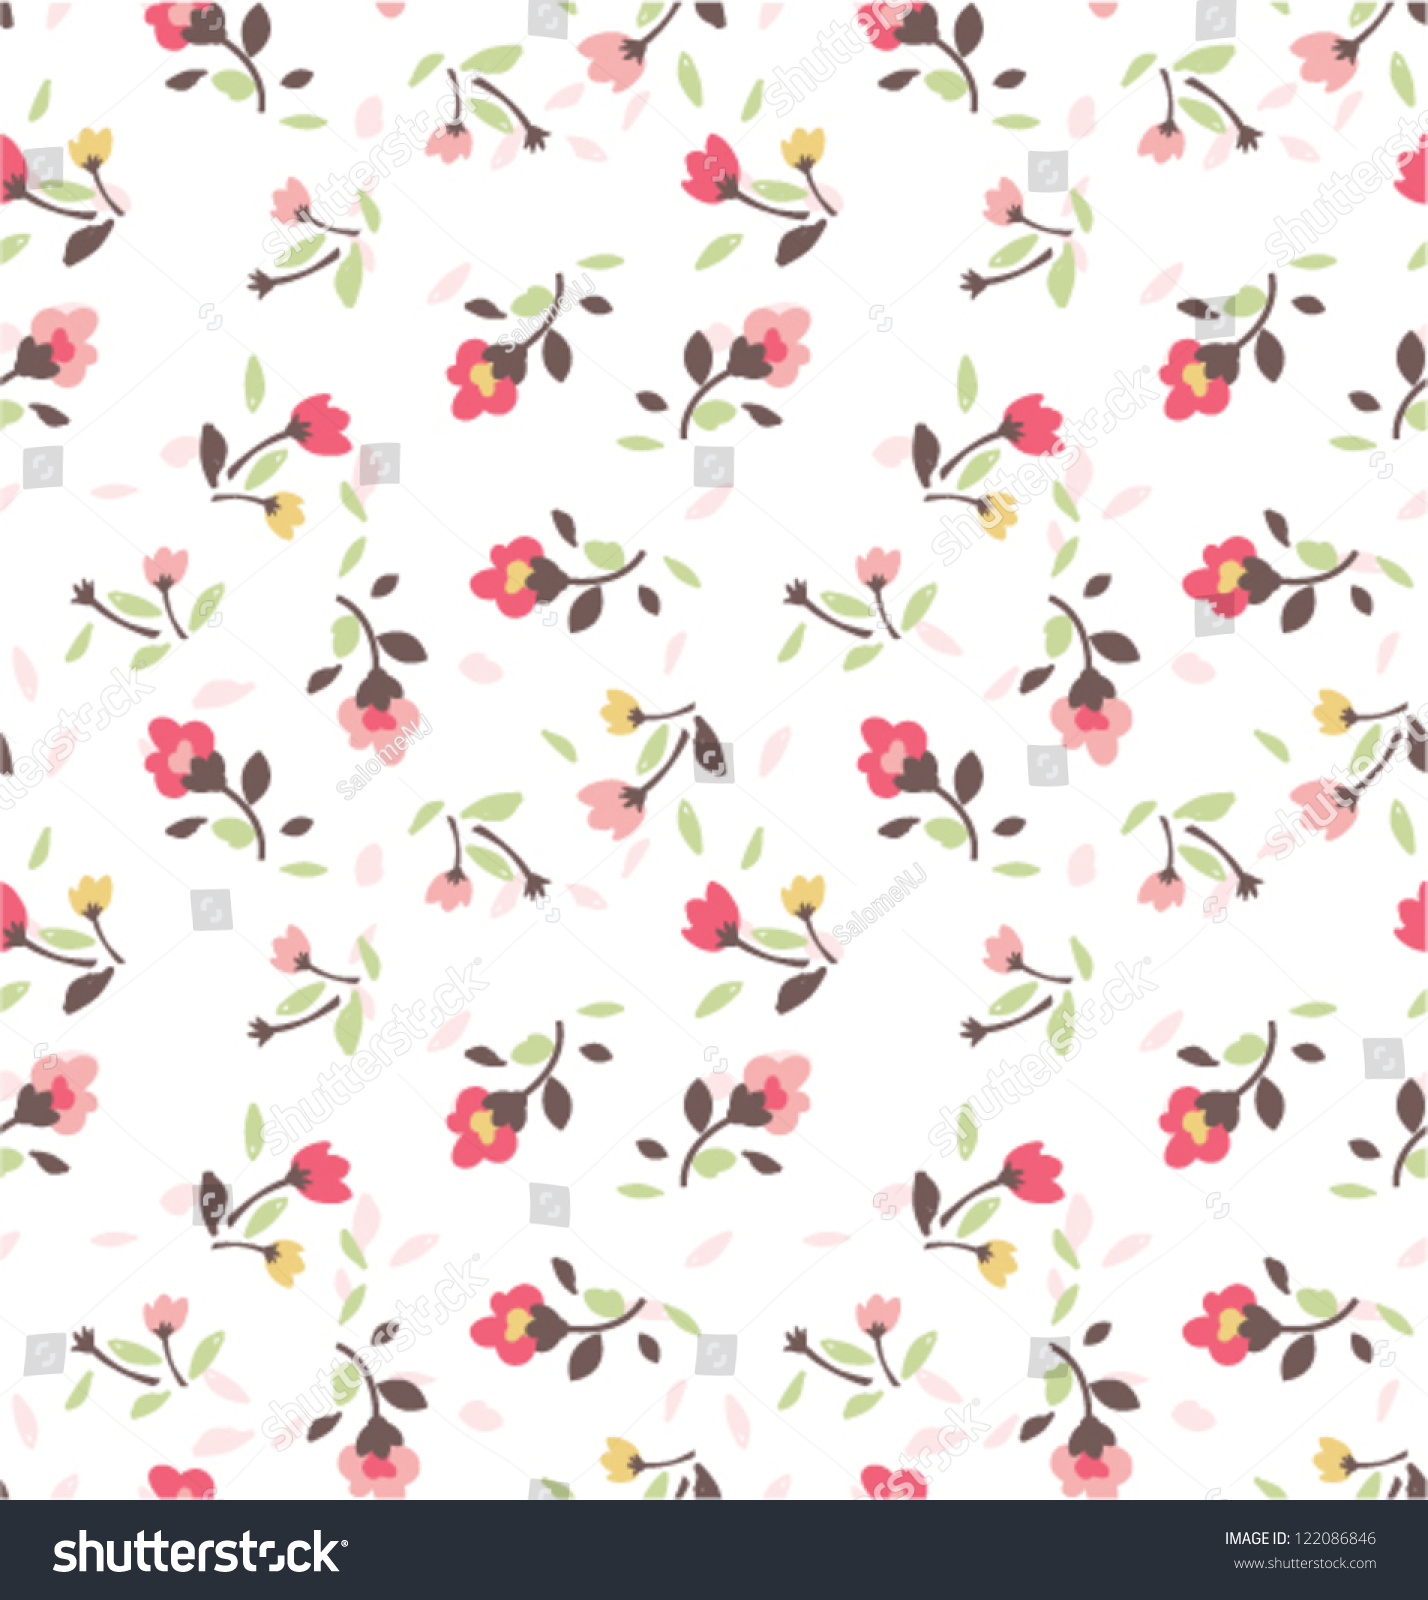 Vintage Tiny Flower Vector Pattern Background Stock Vector